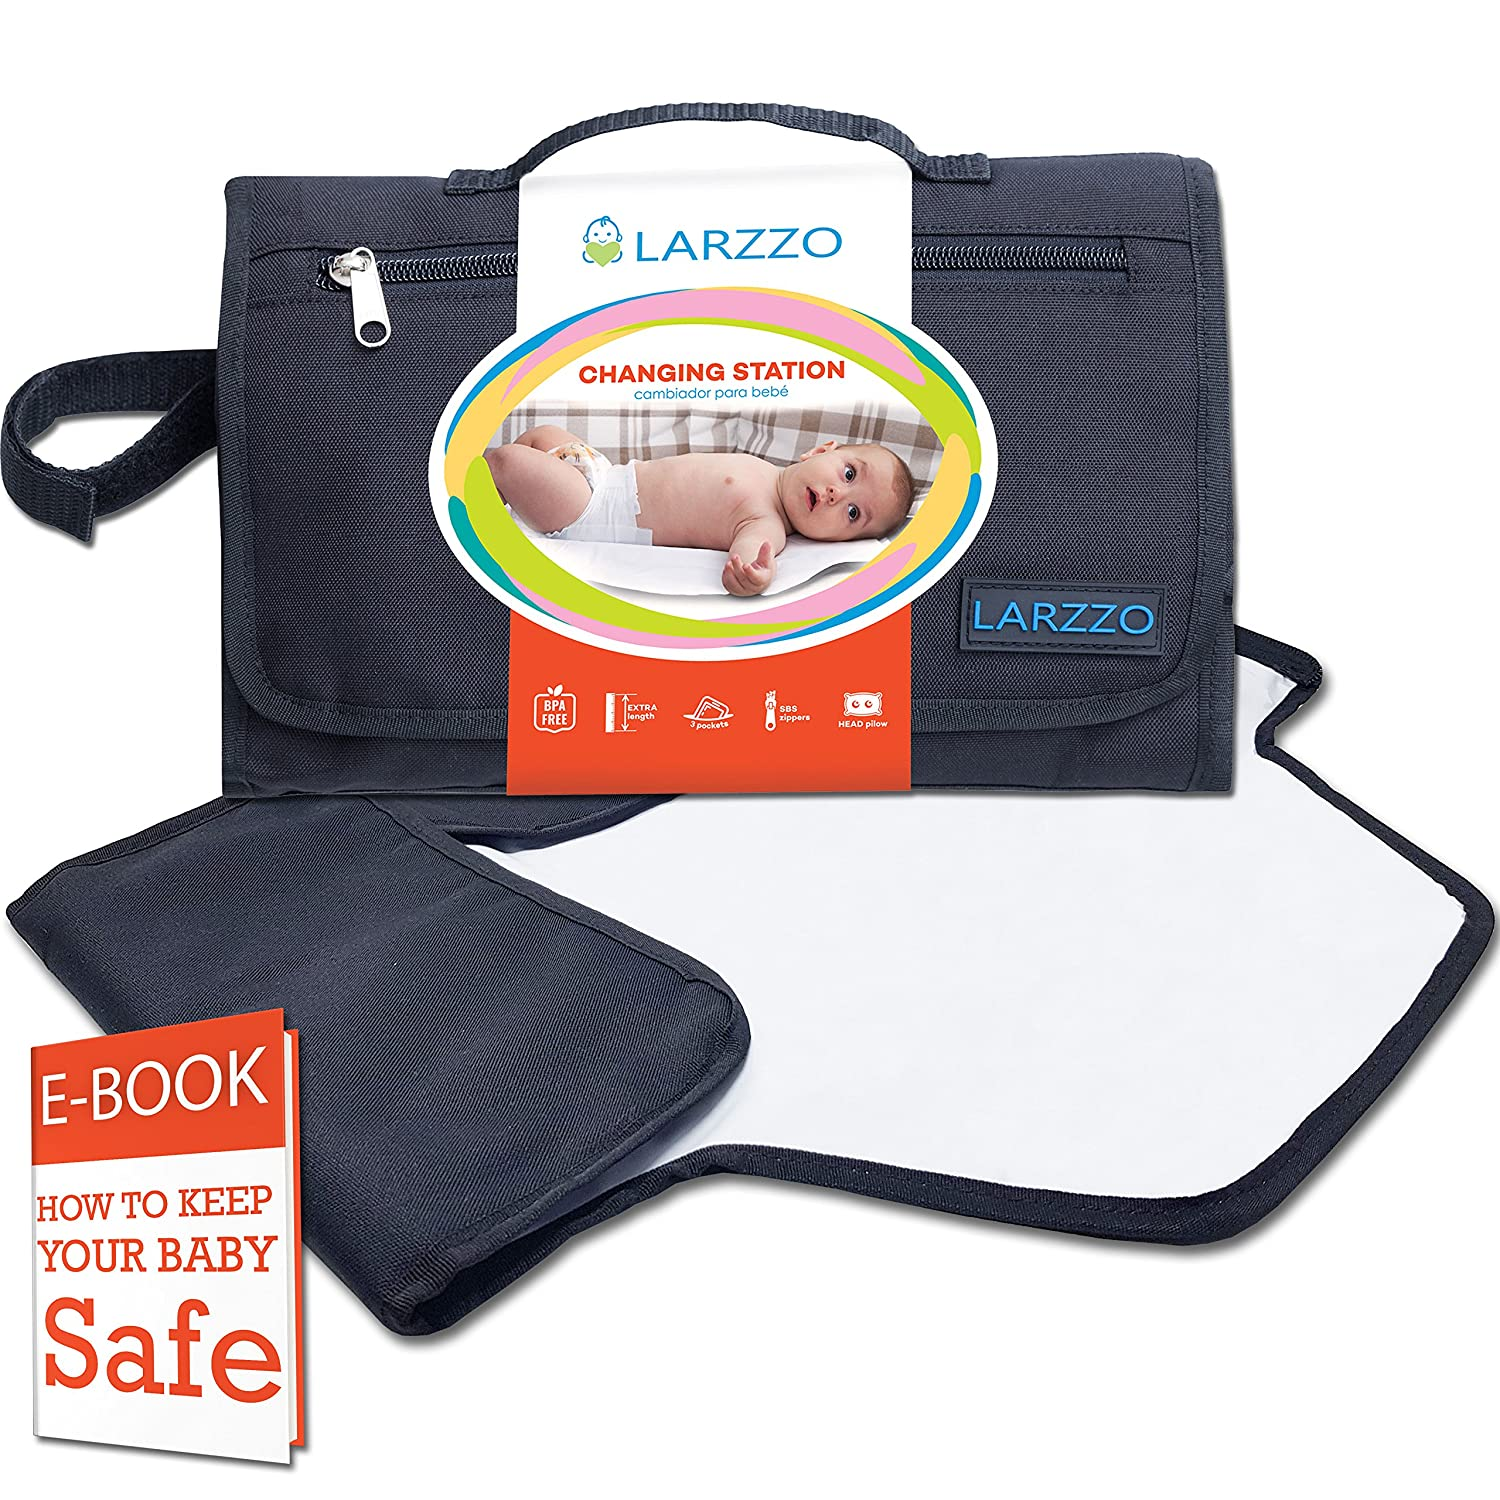 Larzzo Diaper Changing Pad, Portable Changing Station for Baby, Travel Diaper Clutch, On-the-go Diaper Changer LRZ001